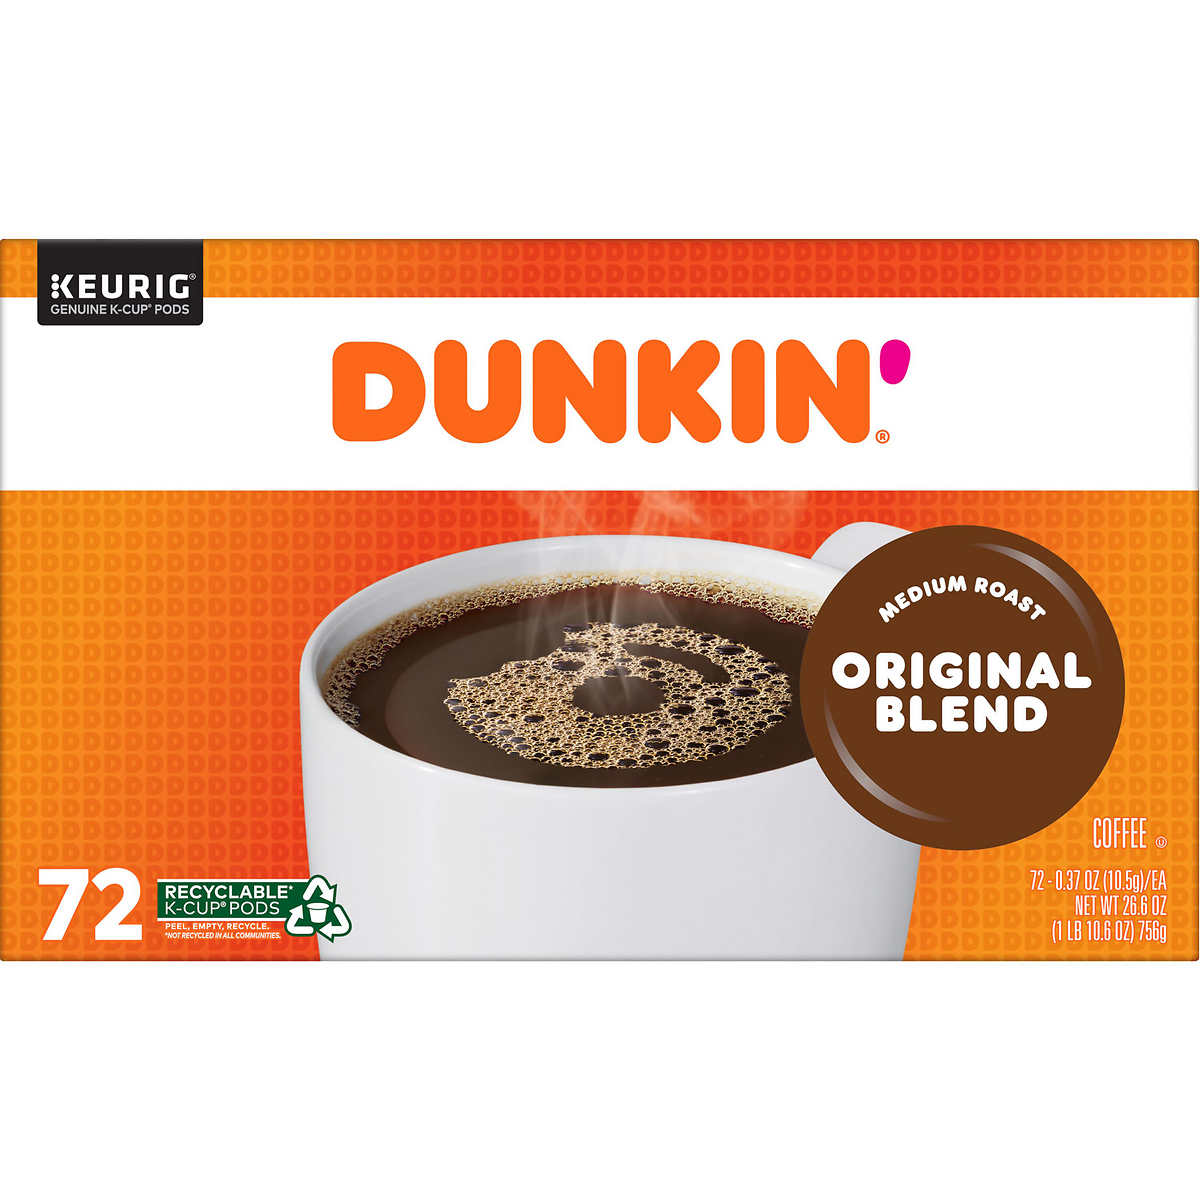 07e84524477 Dunkin' Donuts, Original Blend, Medium Roast, K-Cup Pods, 72ct